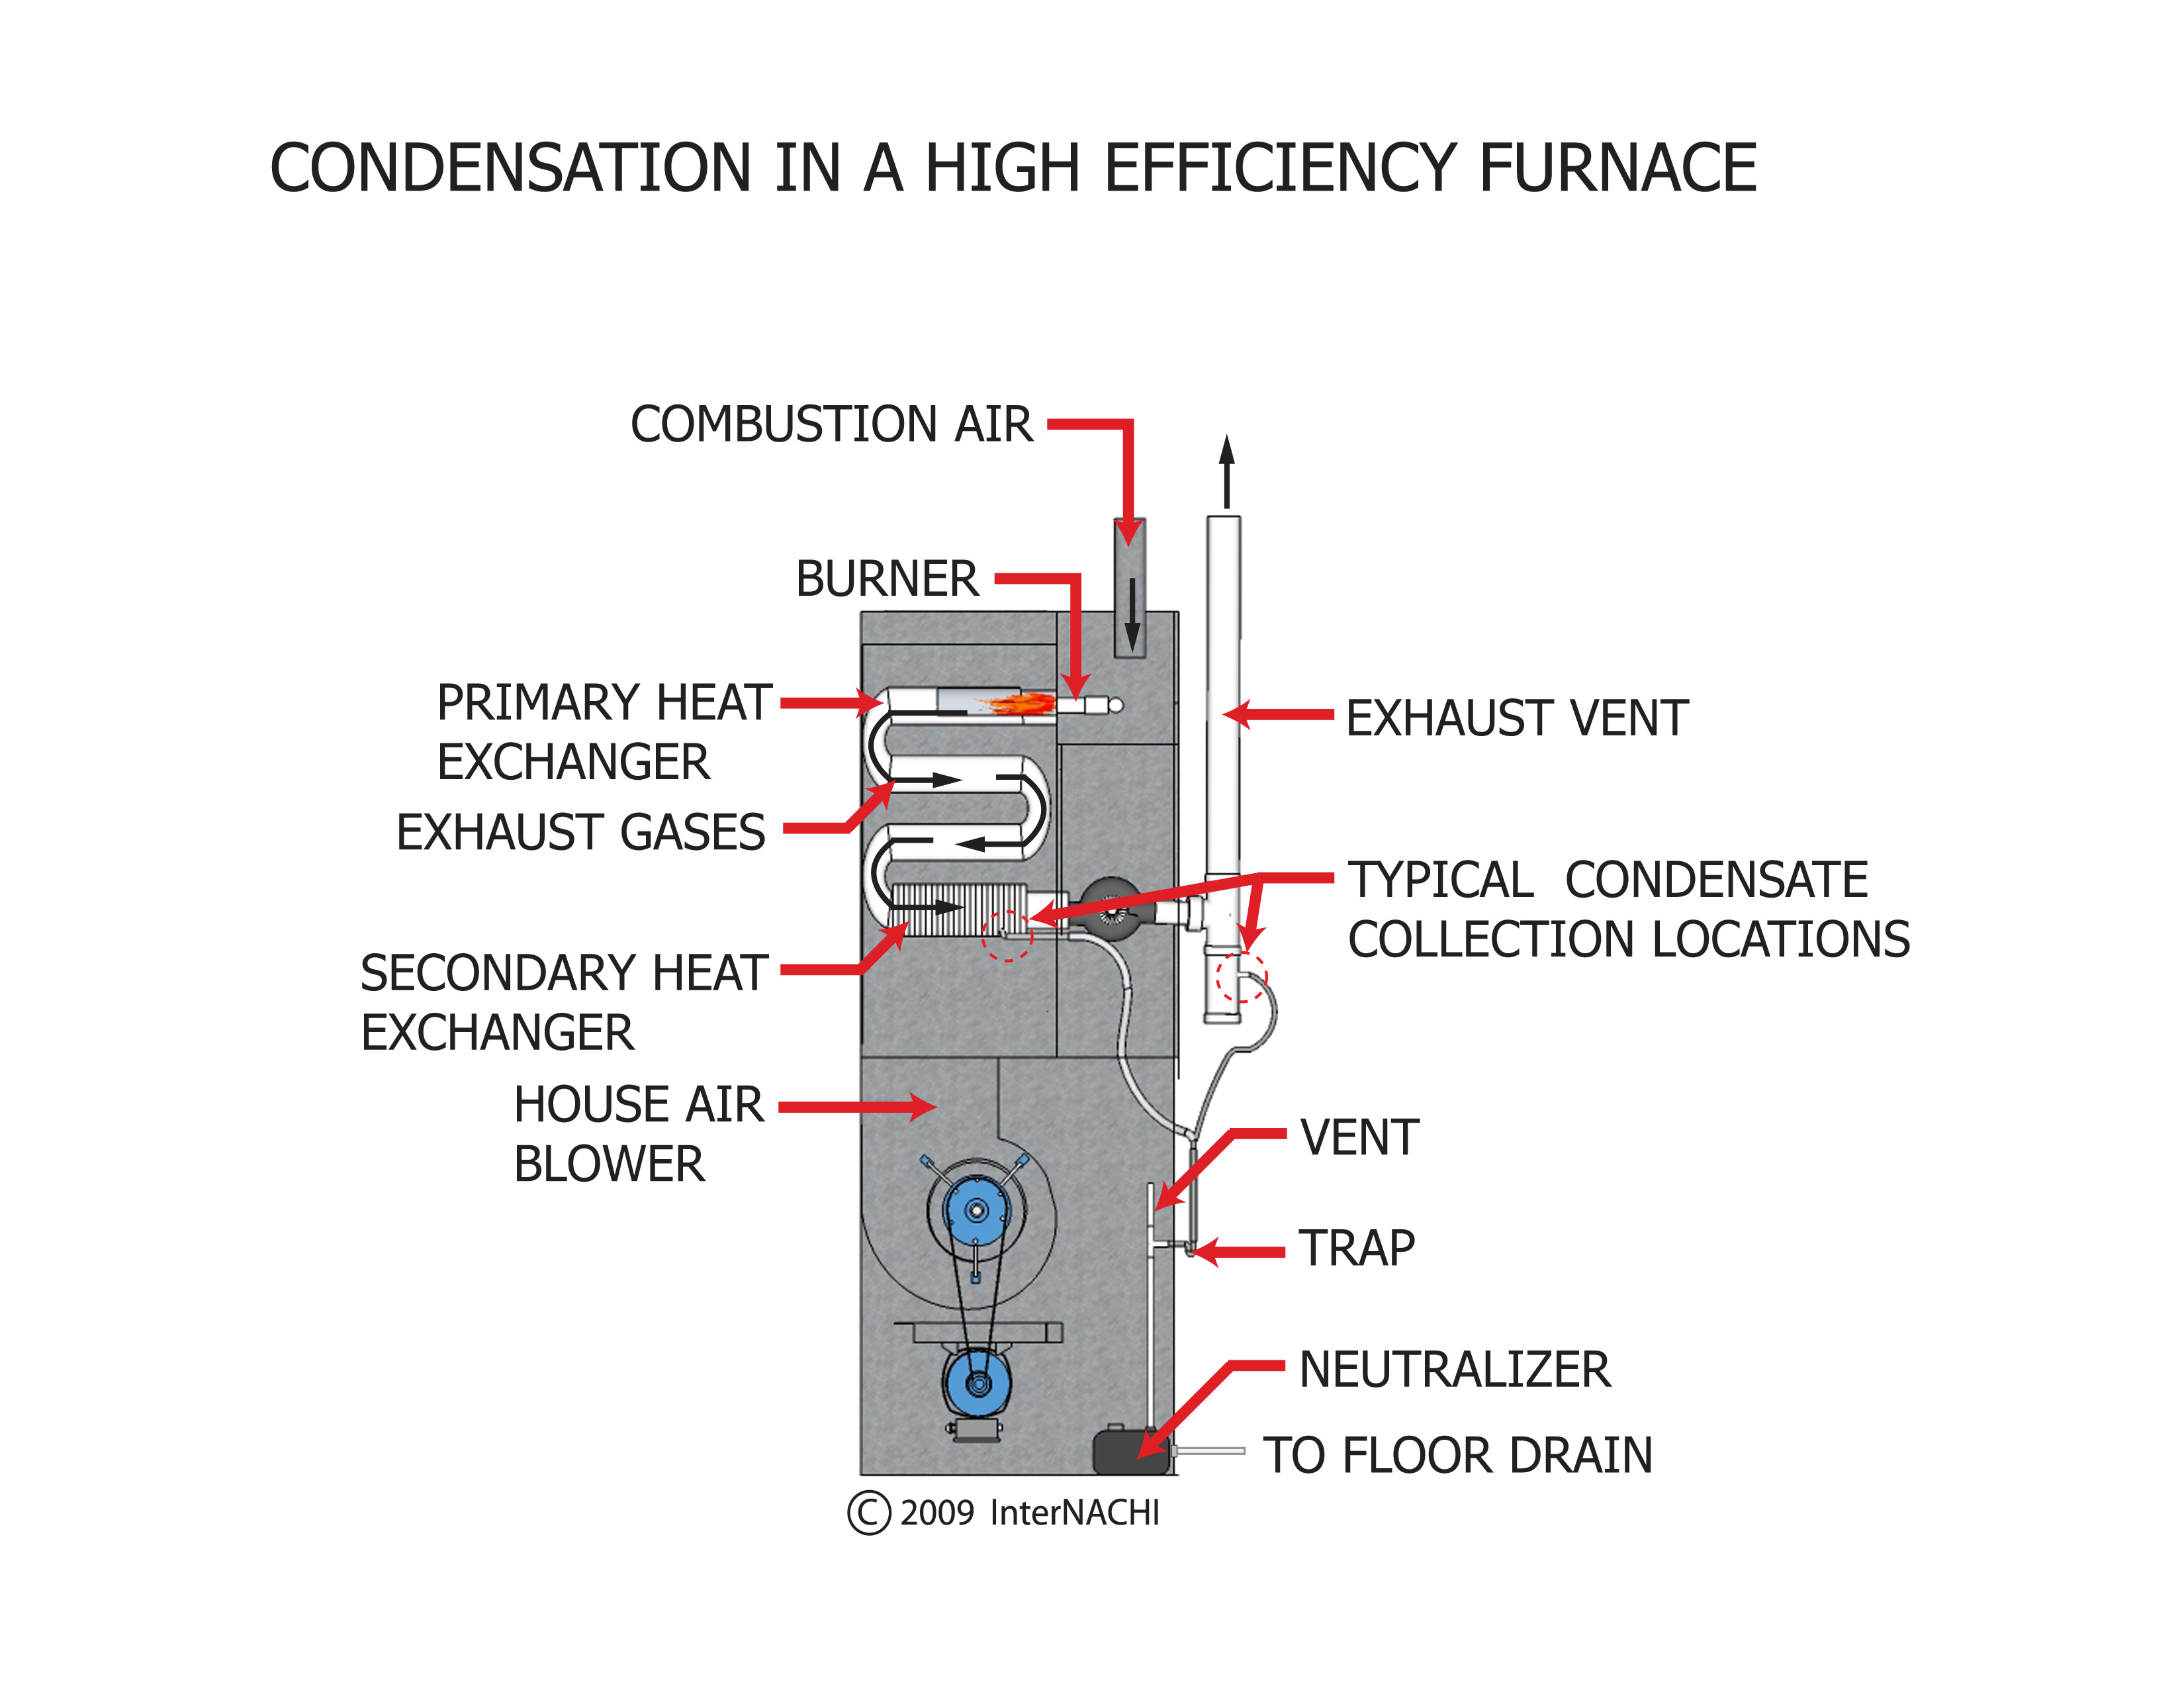 Condensation in a high-efficiency furnace.